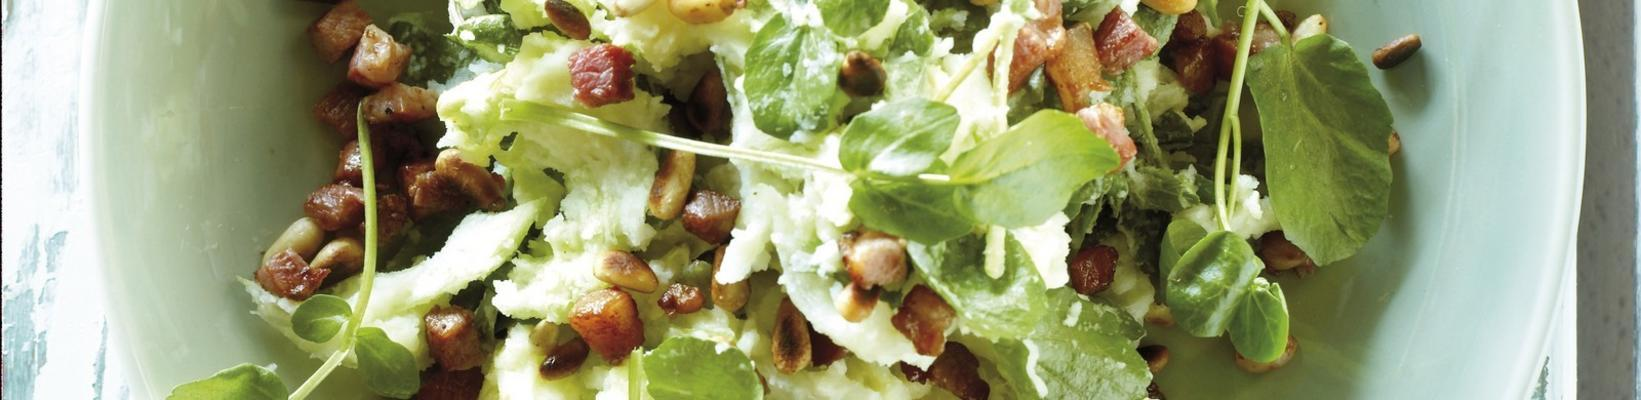 stew with watercress, iceberg lettuce, bacon and pine nuts